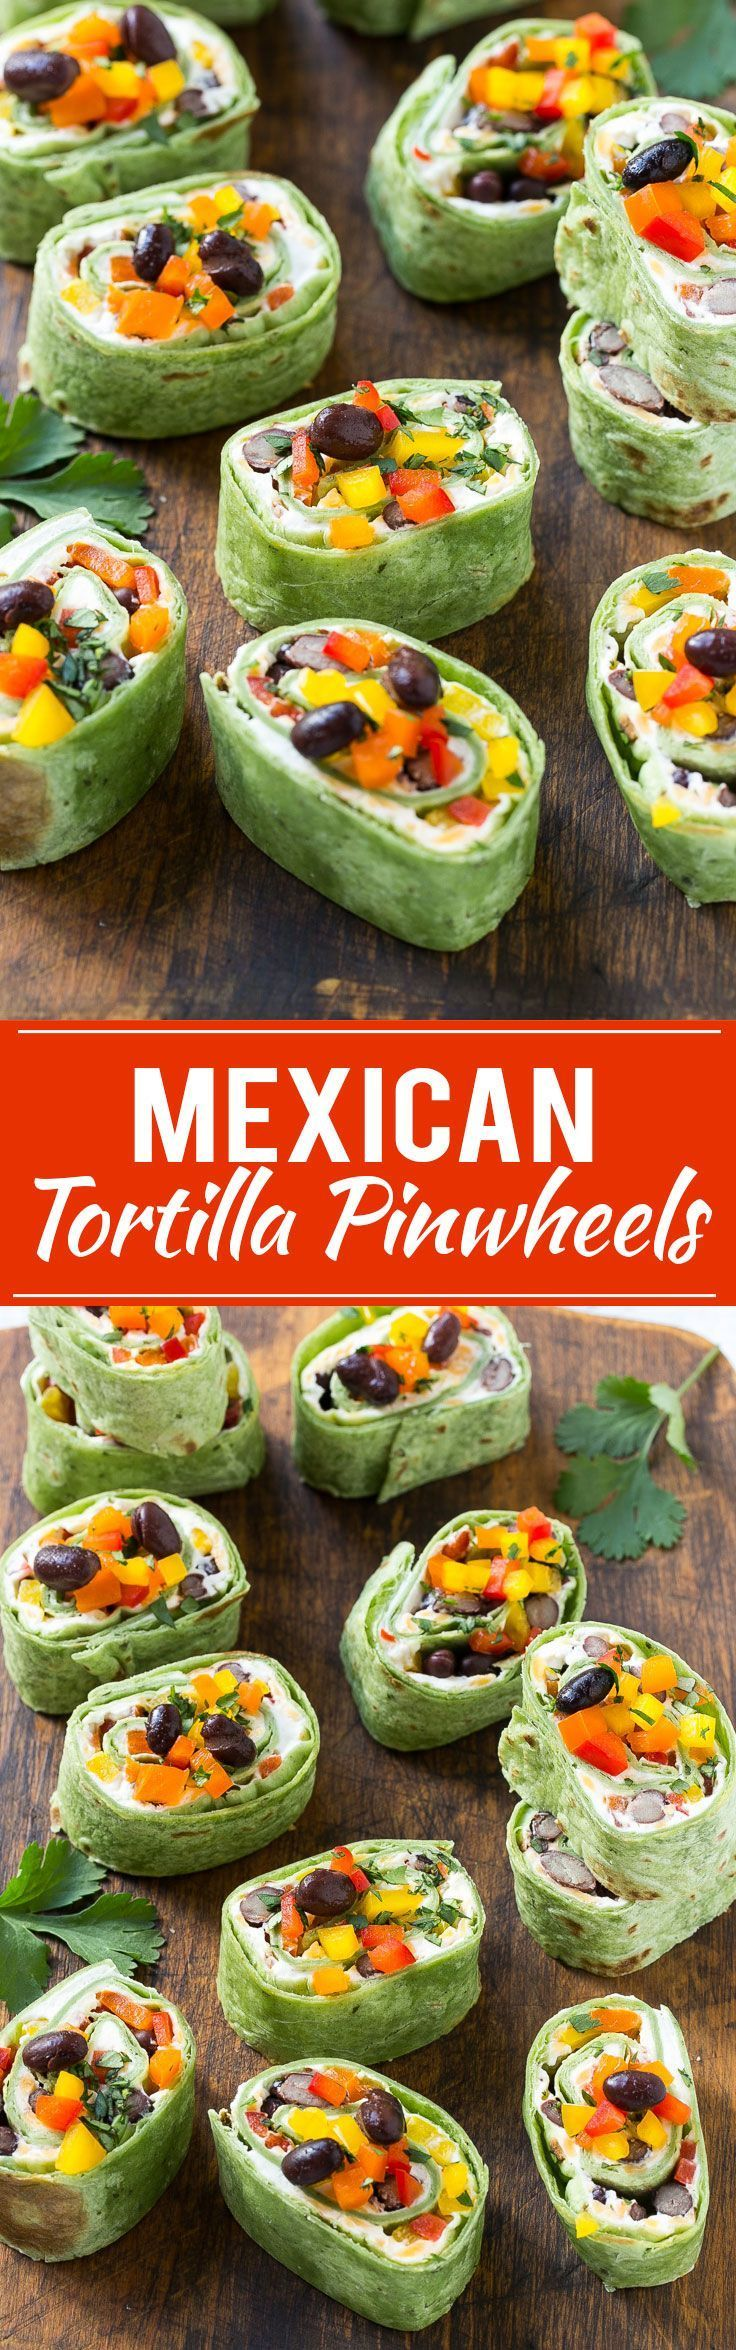 This recipe for Mexican tortilla pinwheels is two types of cheese, black beans and colorful veggies all rolled up inside tortillas and cut into rounds. The perfect make-ahead snack or appetizer! #fingerfoodpartyappetizers